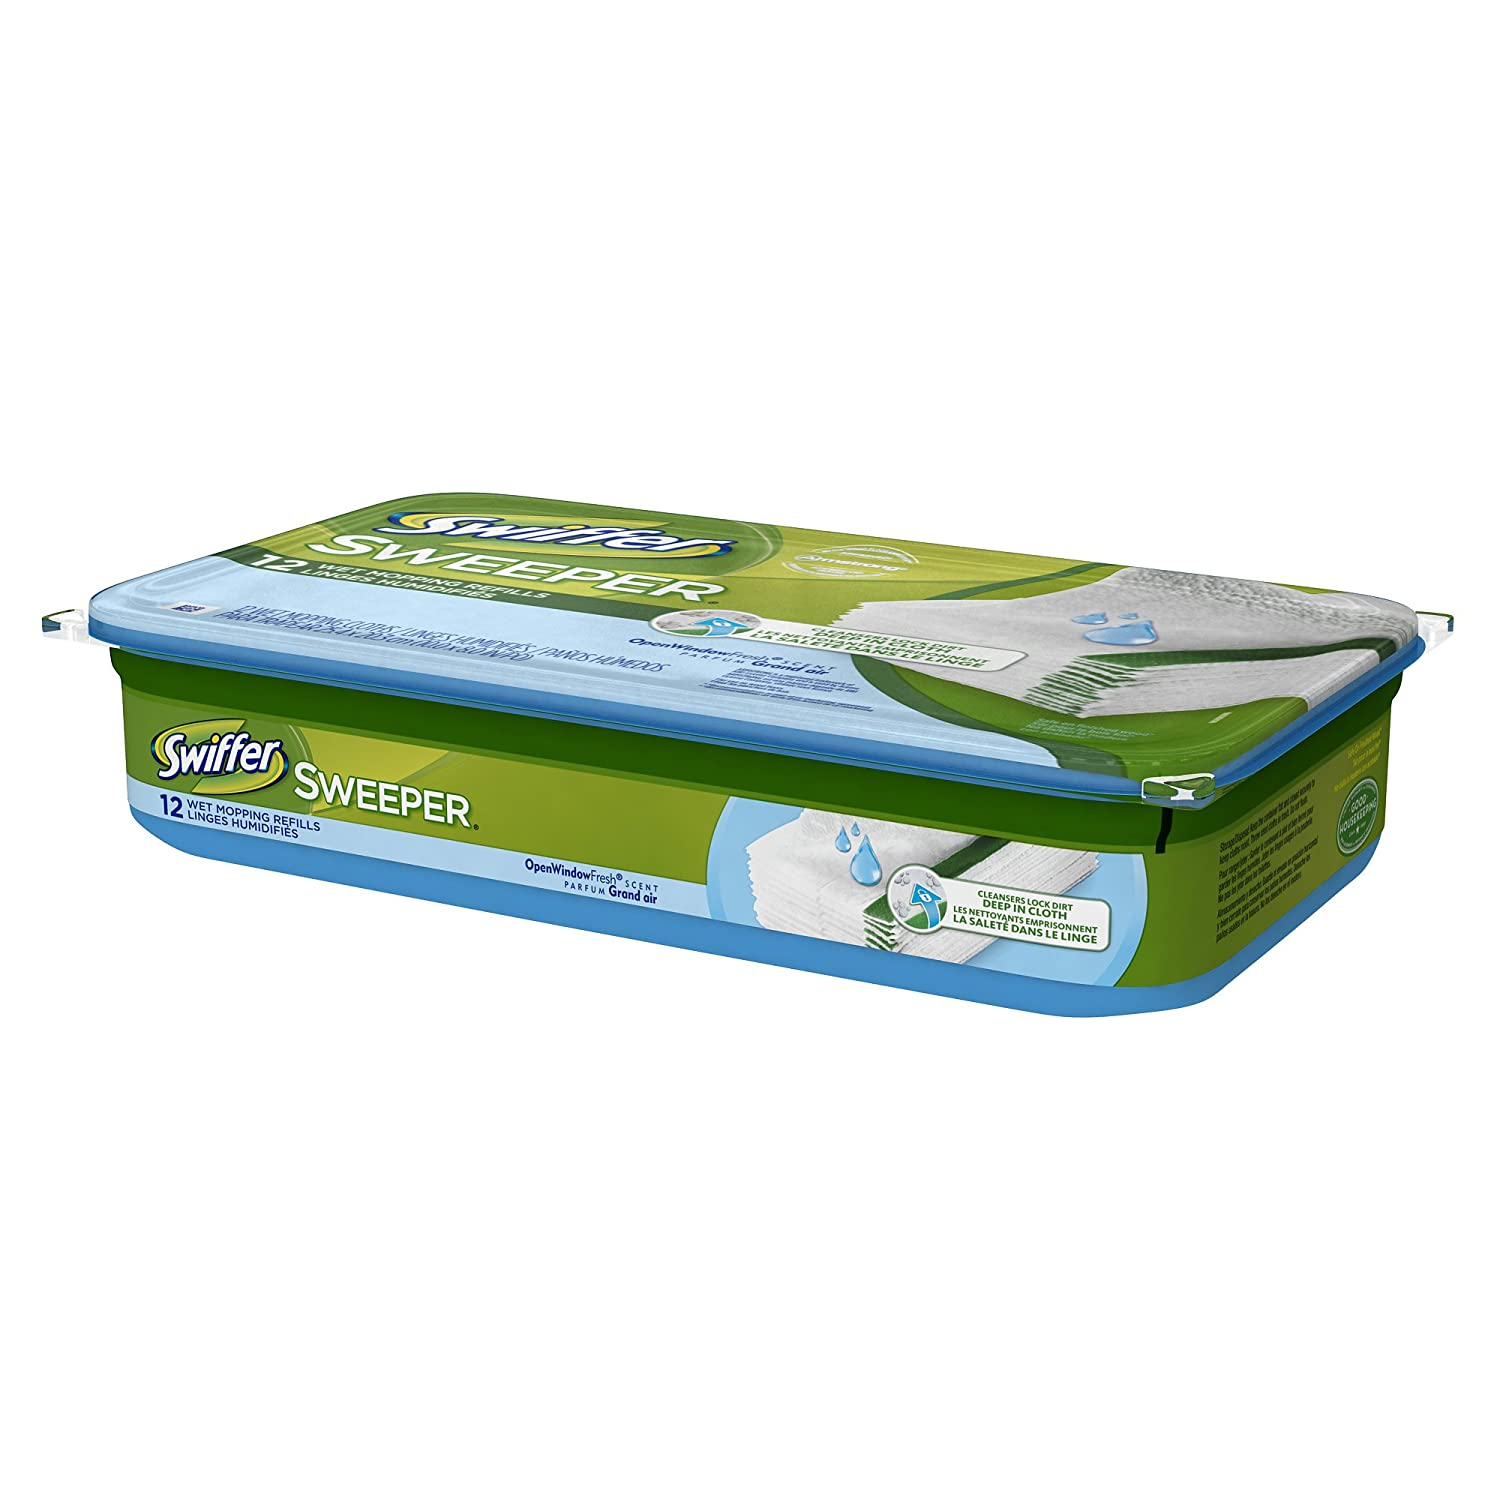 swiffer sweeper wet mopping cloths are designed with a unique cleaning solution that works to dissolve tough spots dirt and grime and pull it deep into the - Swiffer Mop